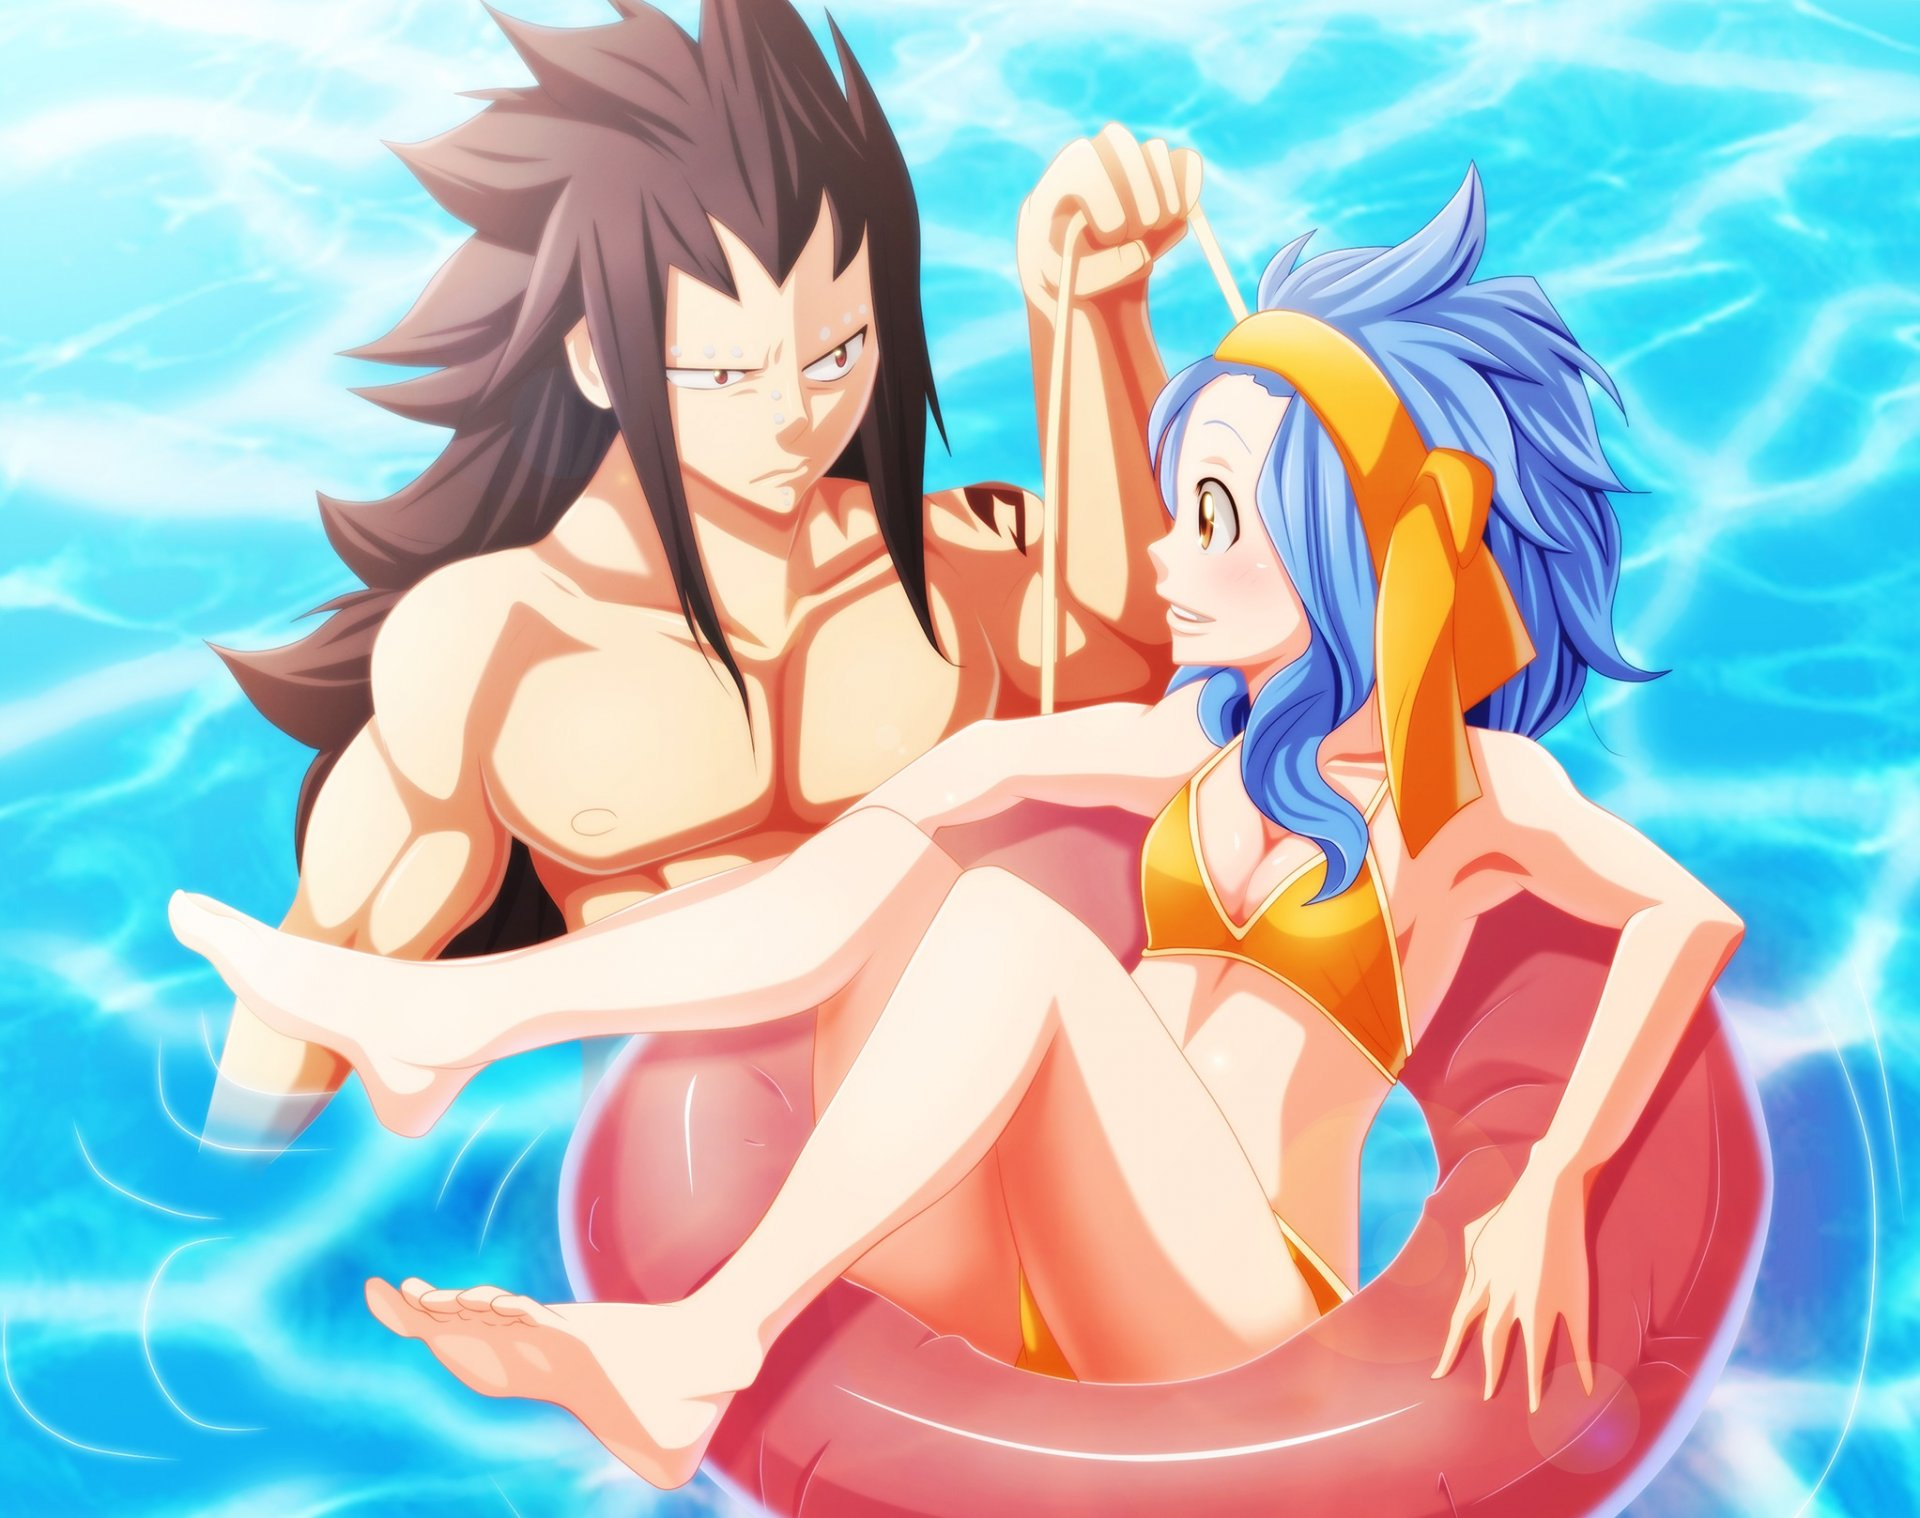 Video porno fairy tail 3d hentai images